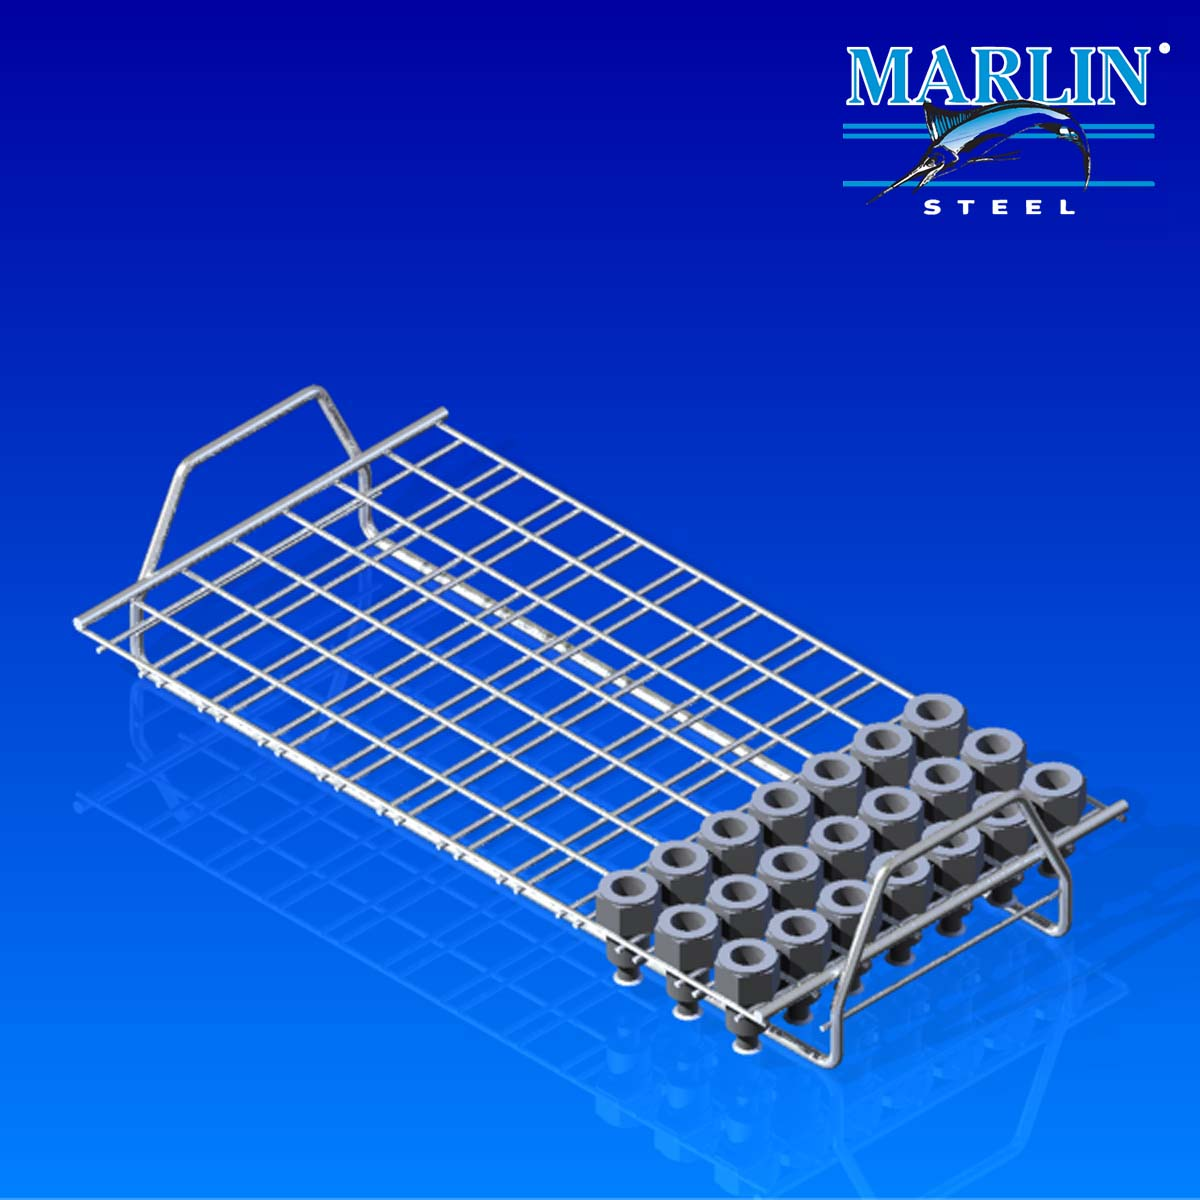 Marlin Steel Wire Material Handling Basket 713001